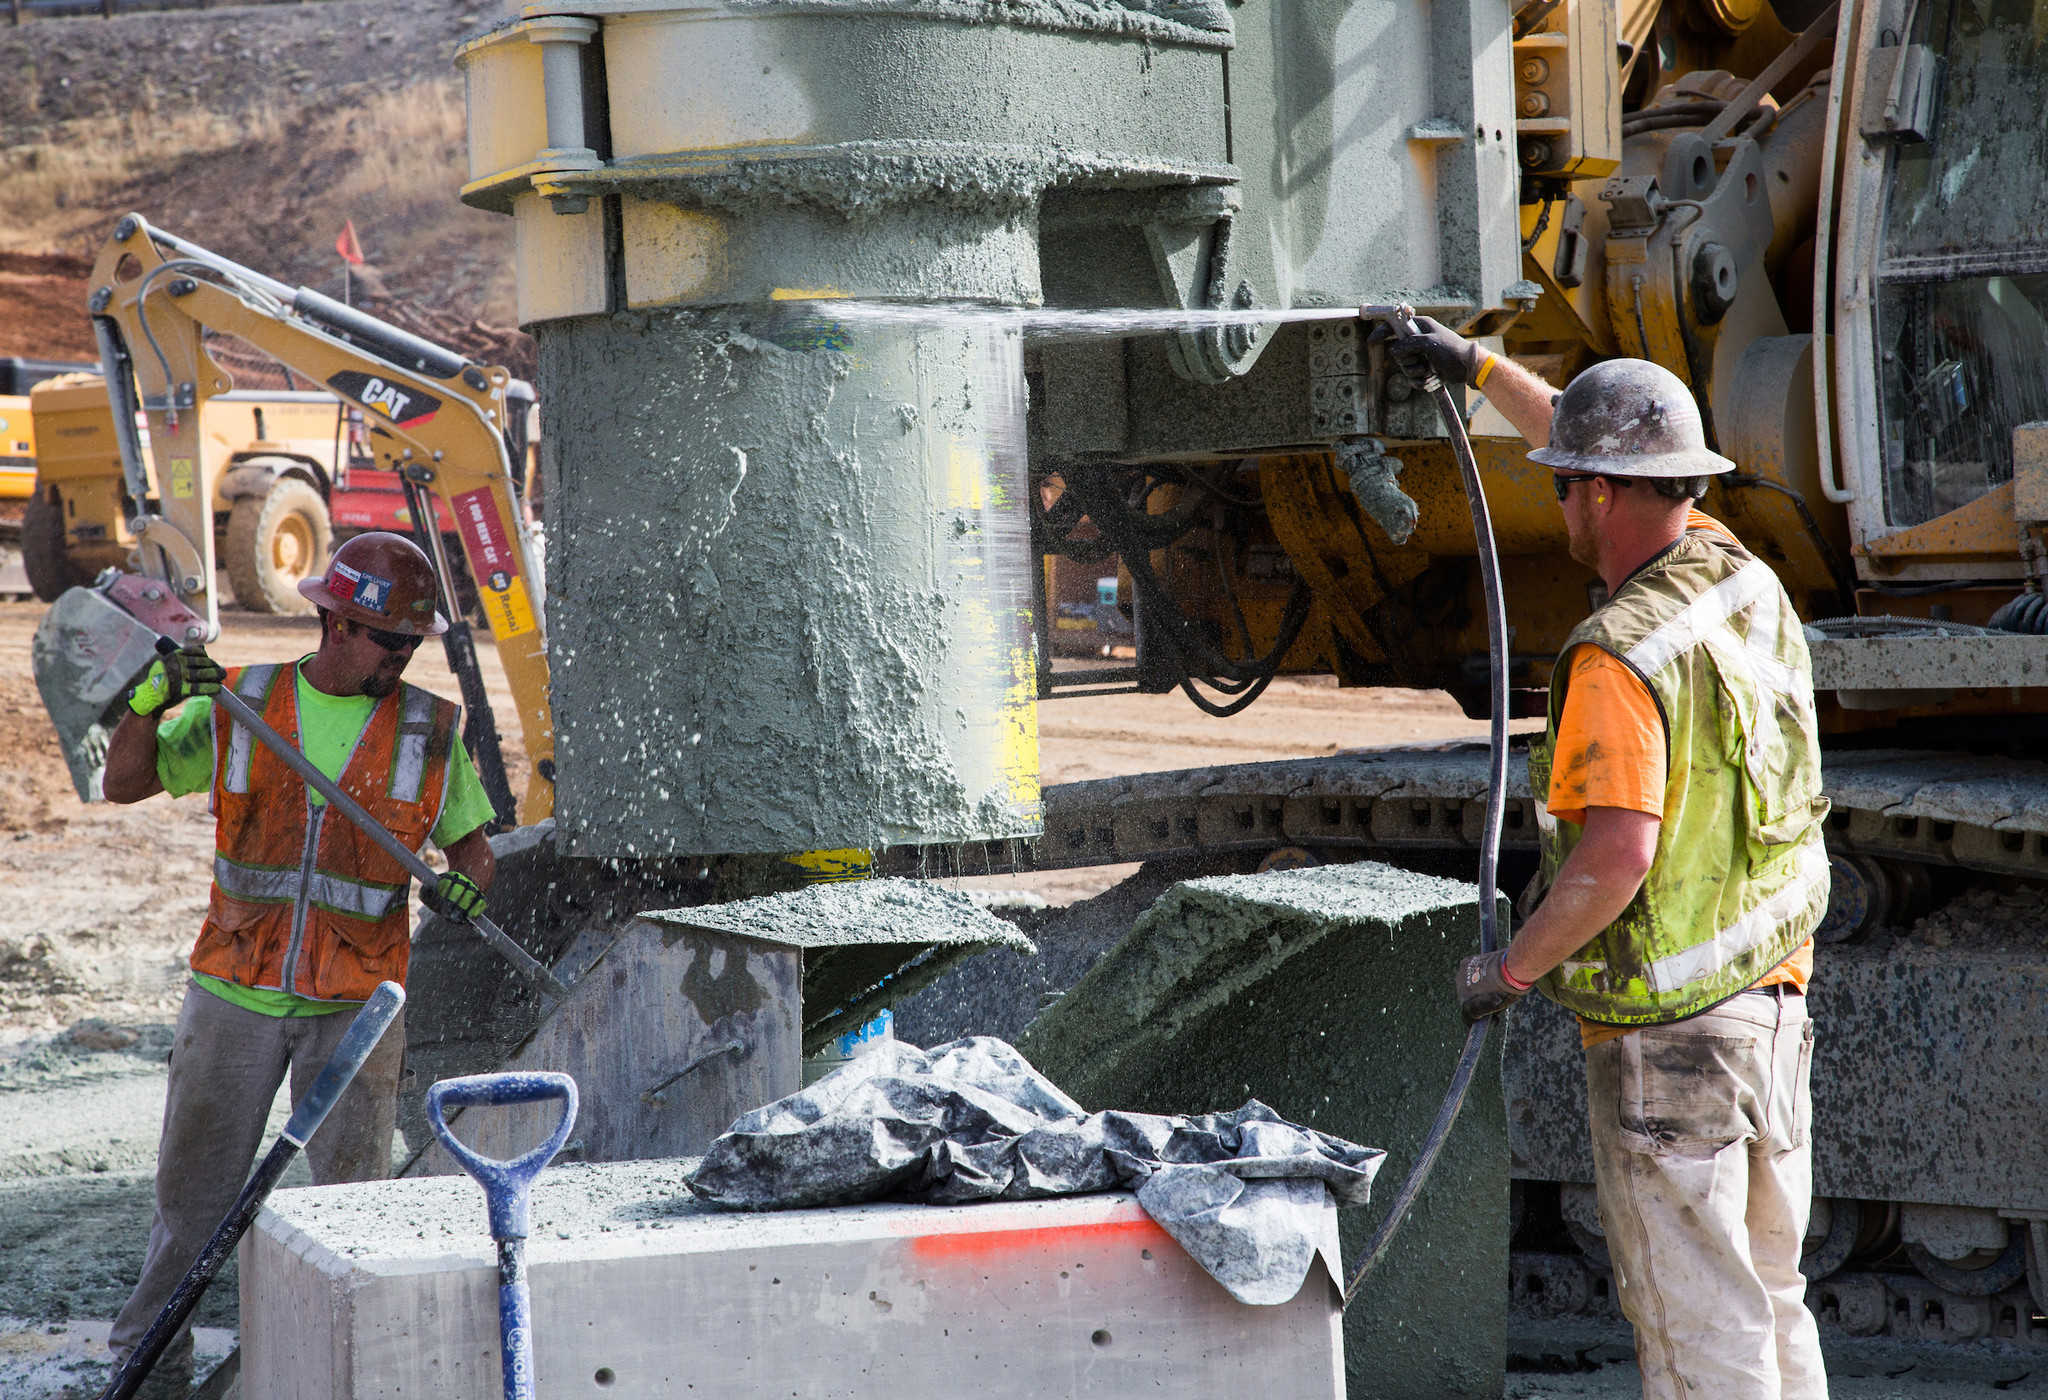 Workers clean the bit of a drilling rig used for drilling holes at the cutoff wall downslope of the Lake Oroville emergency spillway on Aug. 14.